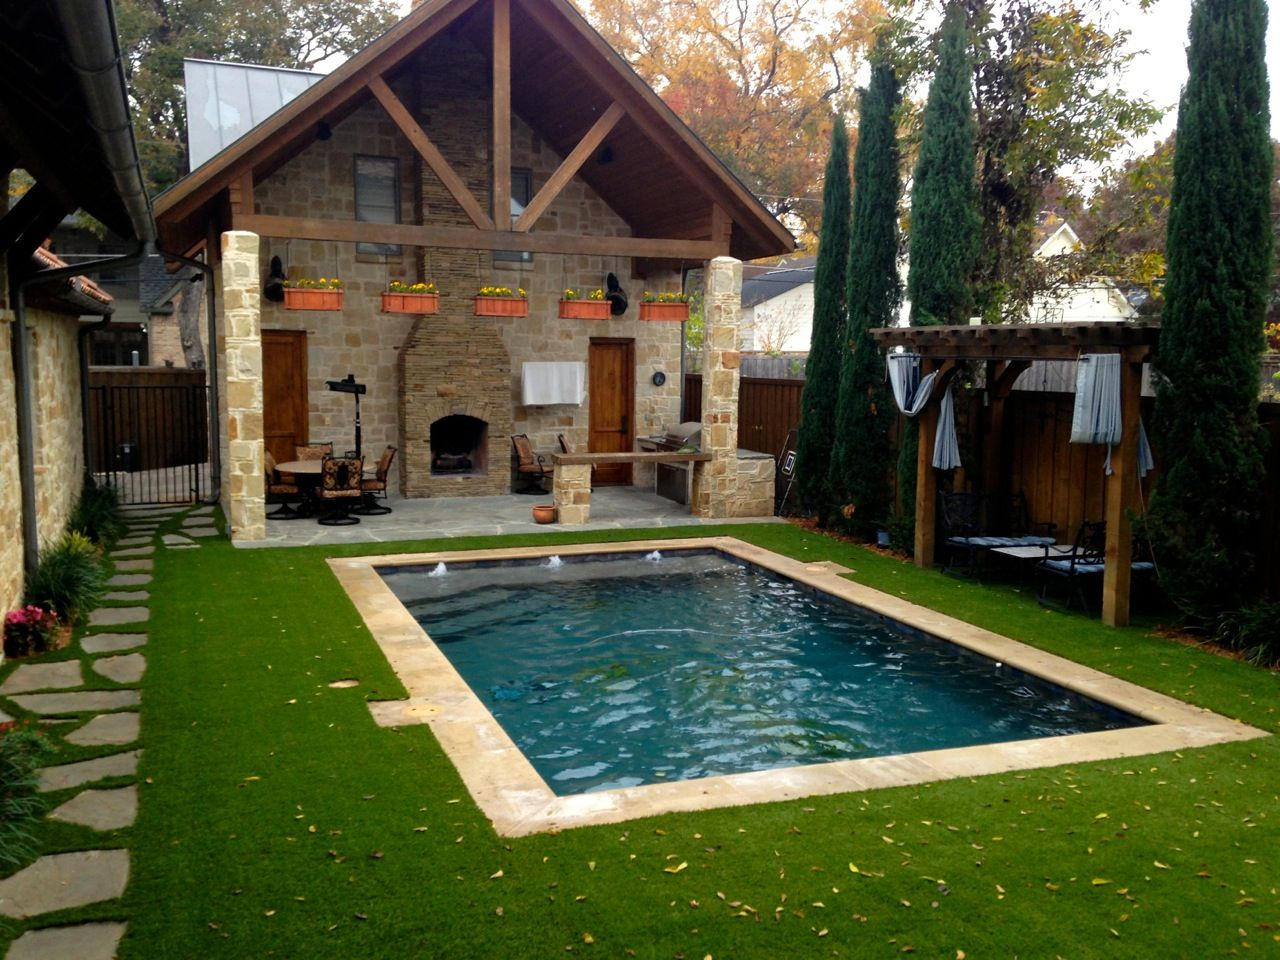 Artificial Turf Is Suitable For Any Area And Ideal For Shady Lawns Or Those Spots Where Grass